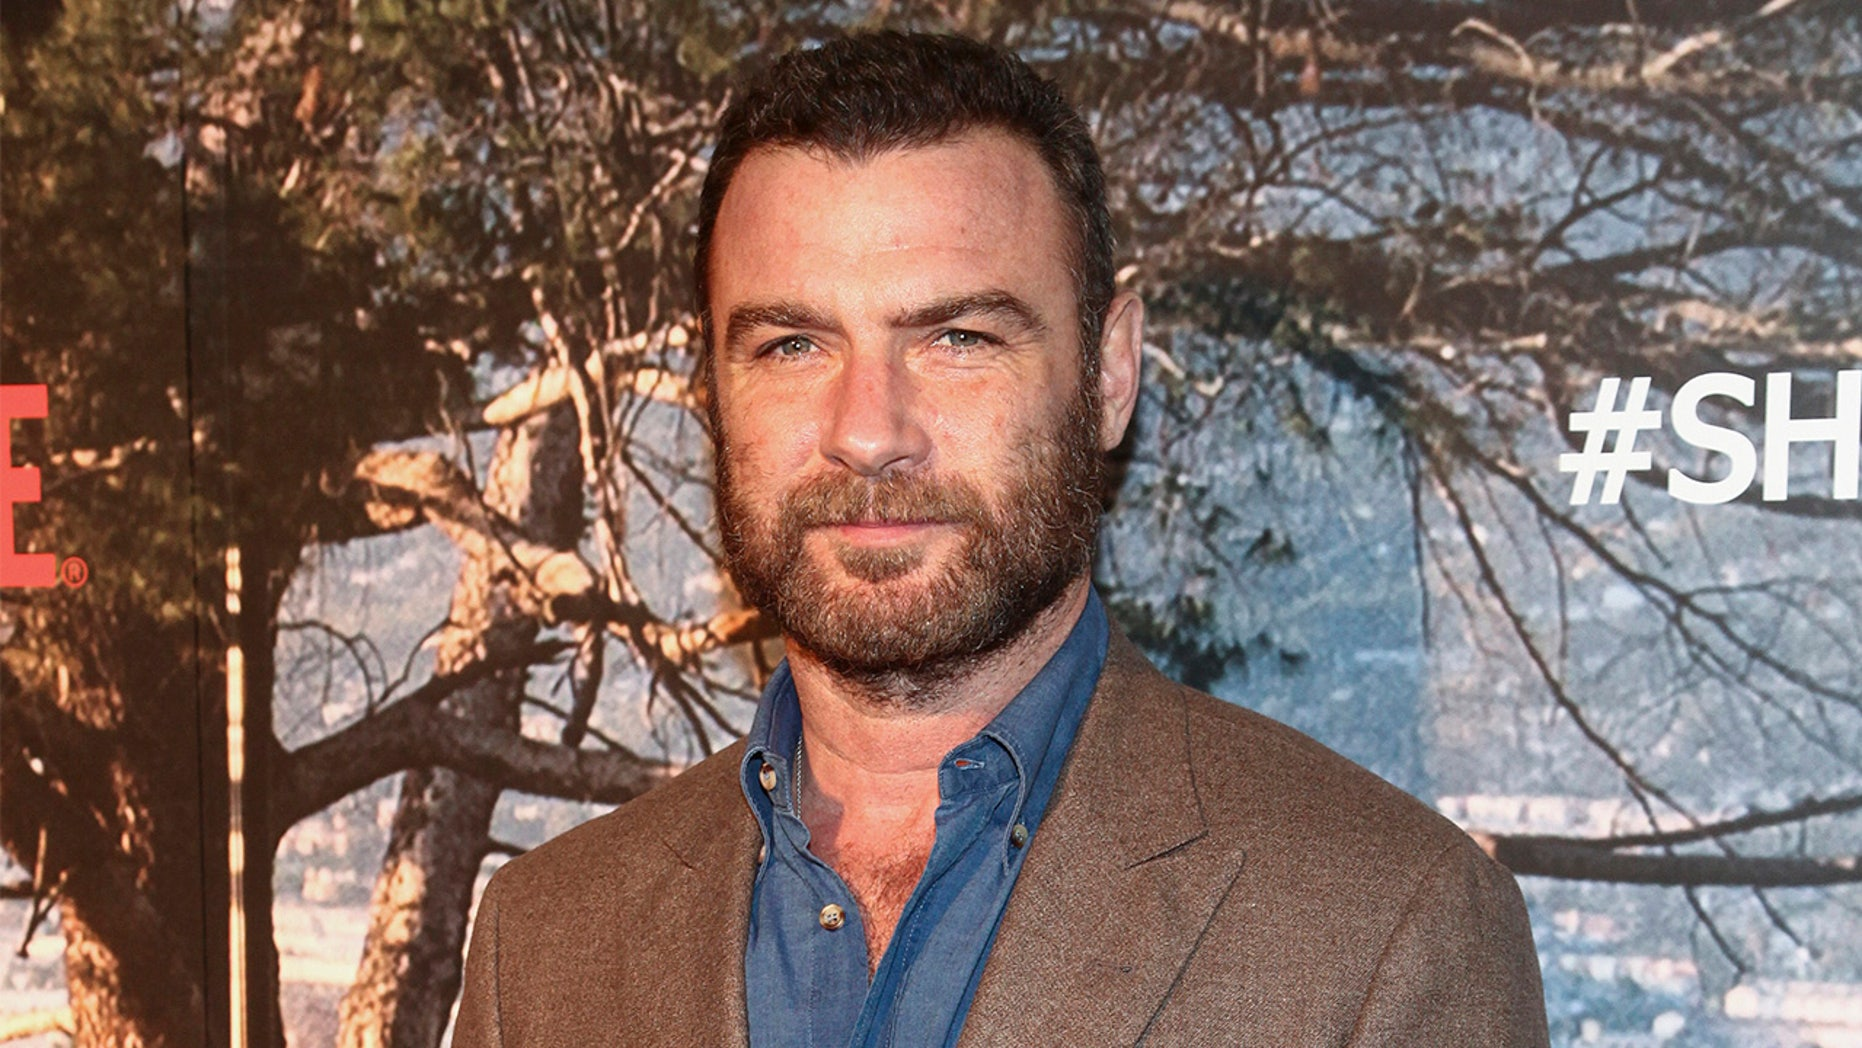 """FILE- In this April 18, 2018 file photo, actor Liev Schreiber attends the premiere of Showtime's """"Ray Donovan"""" season six in New York. On Wednesday, Sept. 19, 2018, a suburban New York judge dismissed charges against Schreiber for allegedly attacking a photographer while the actor was filming his popular Showtime series. (Photo by Andy Kropa/Invision/AP, File)"""